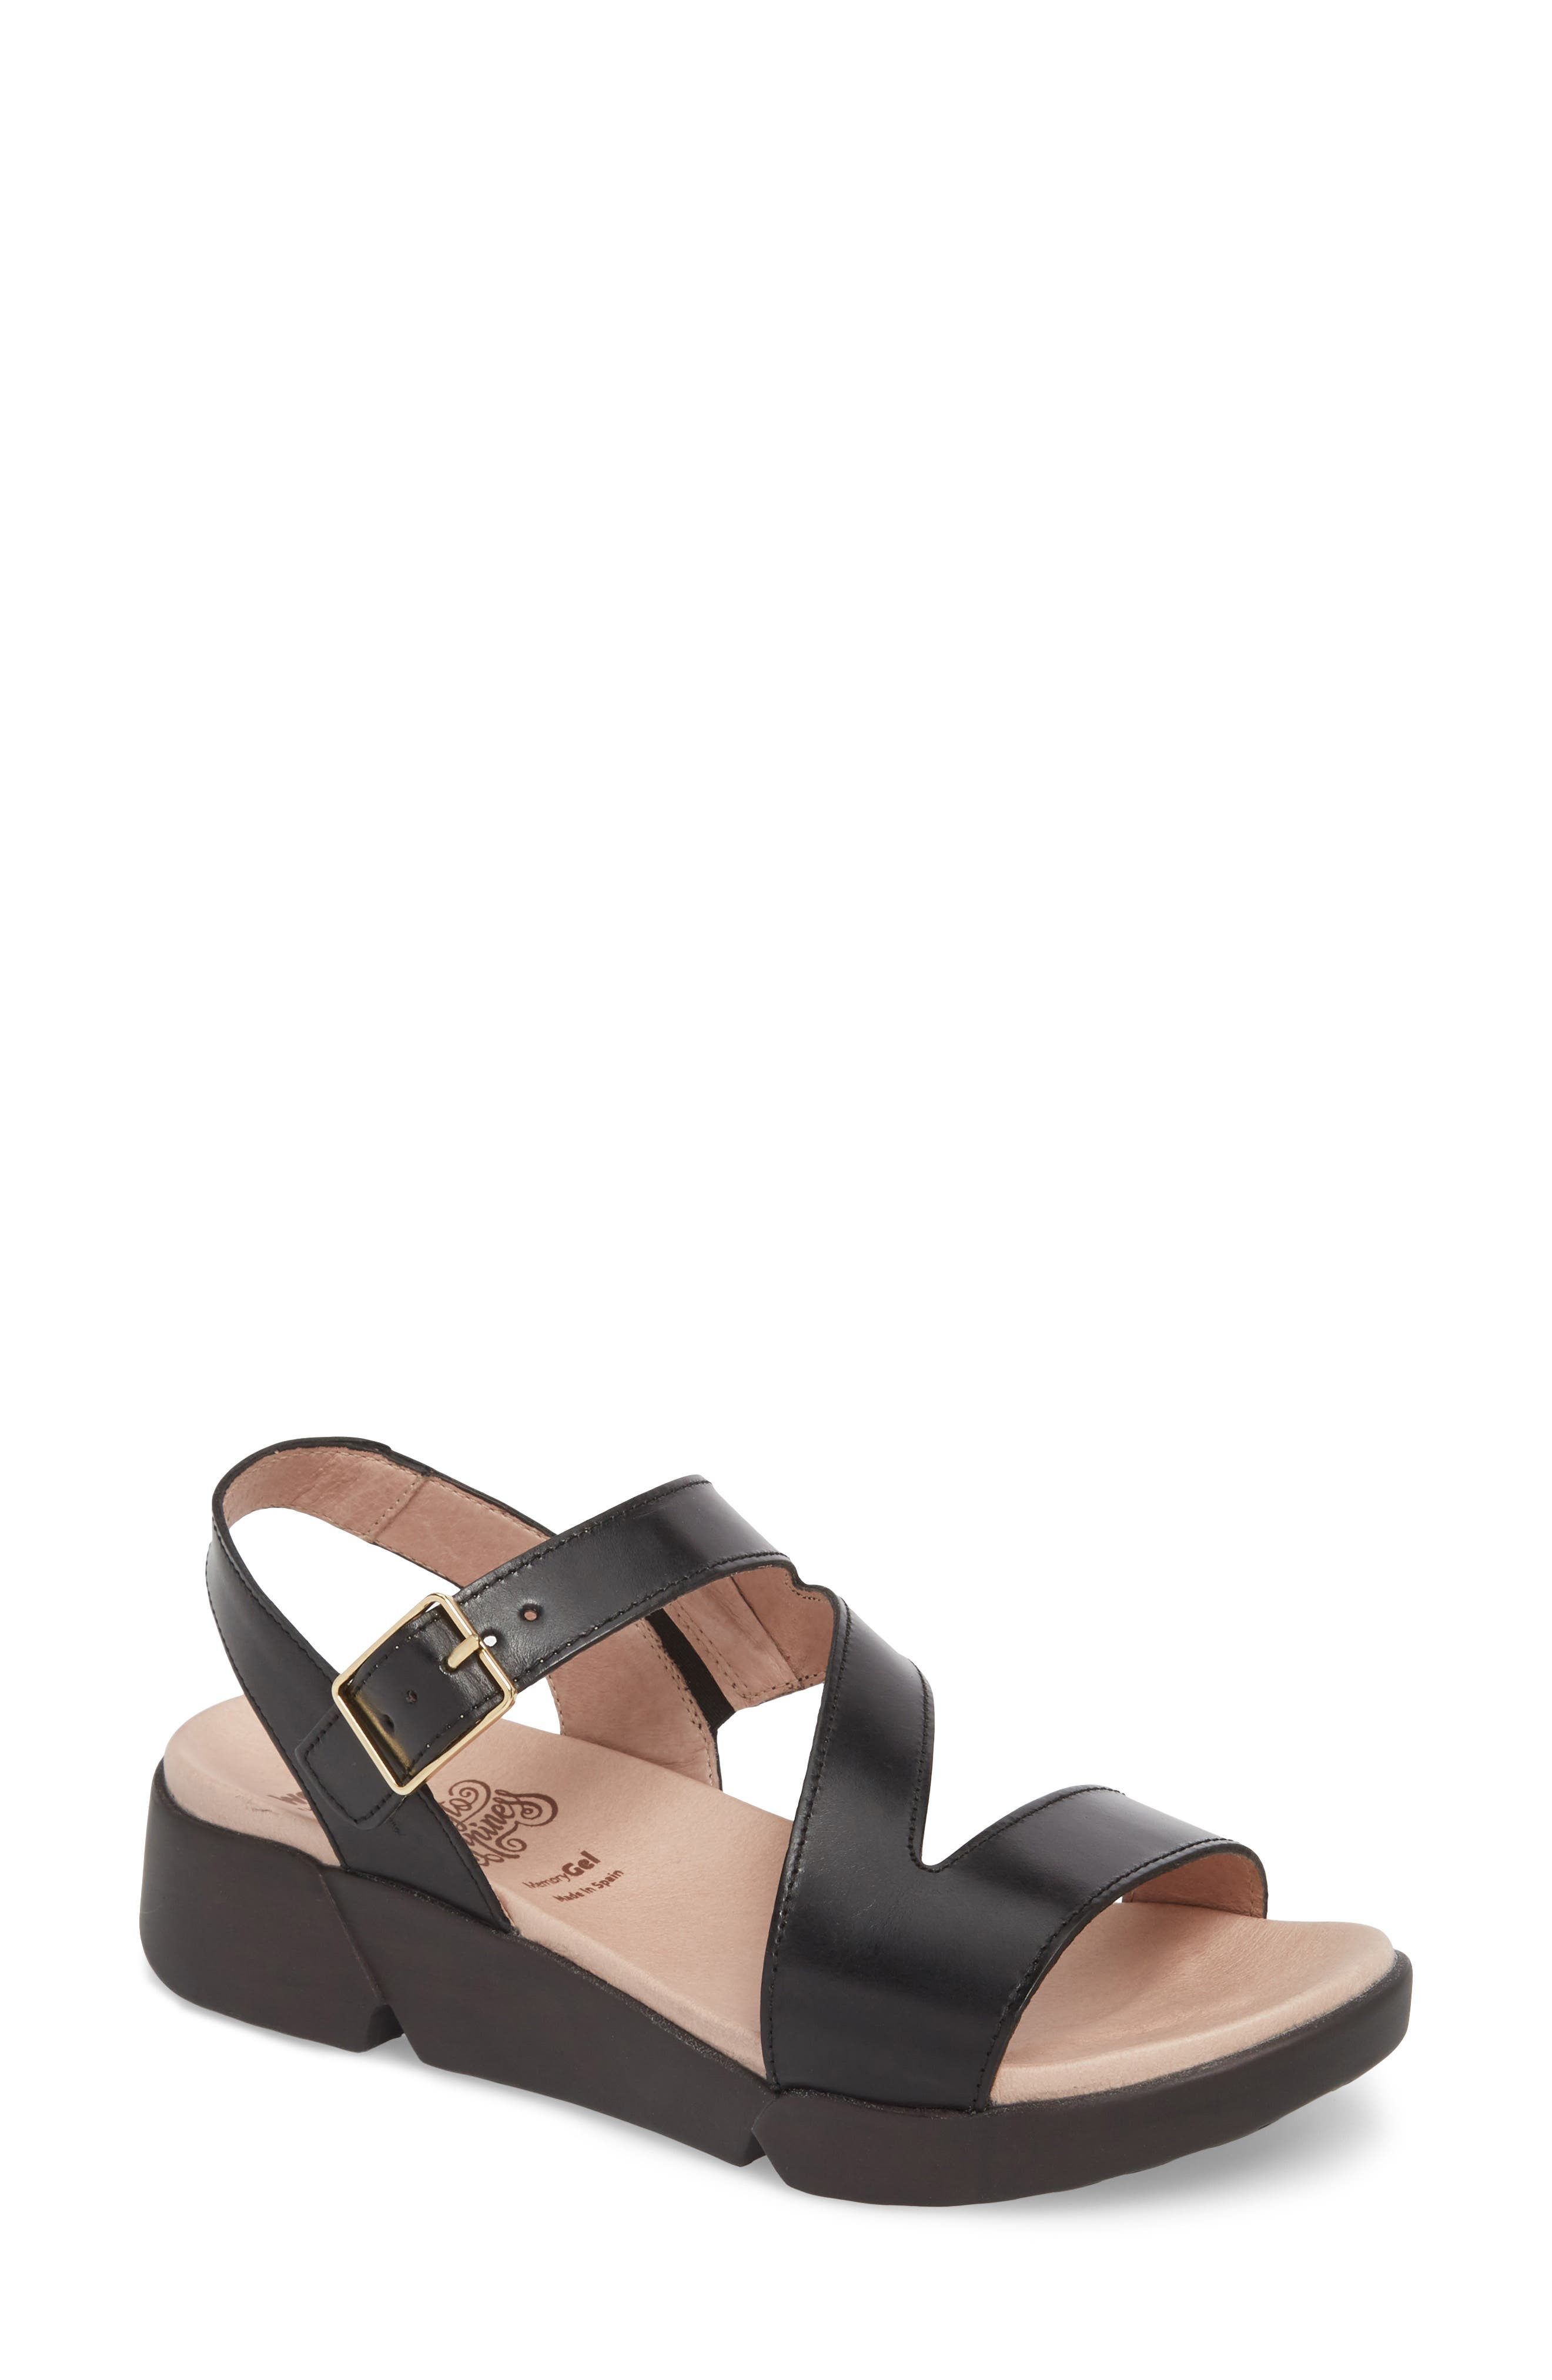 Platform Wedge Sandal,                         Main,                         color, BLACK LEATHER